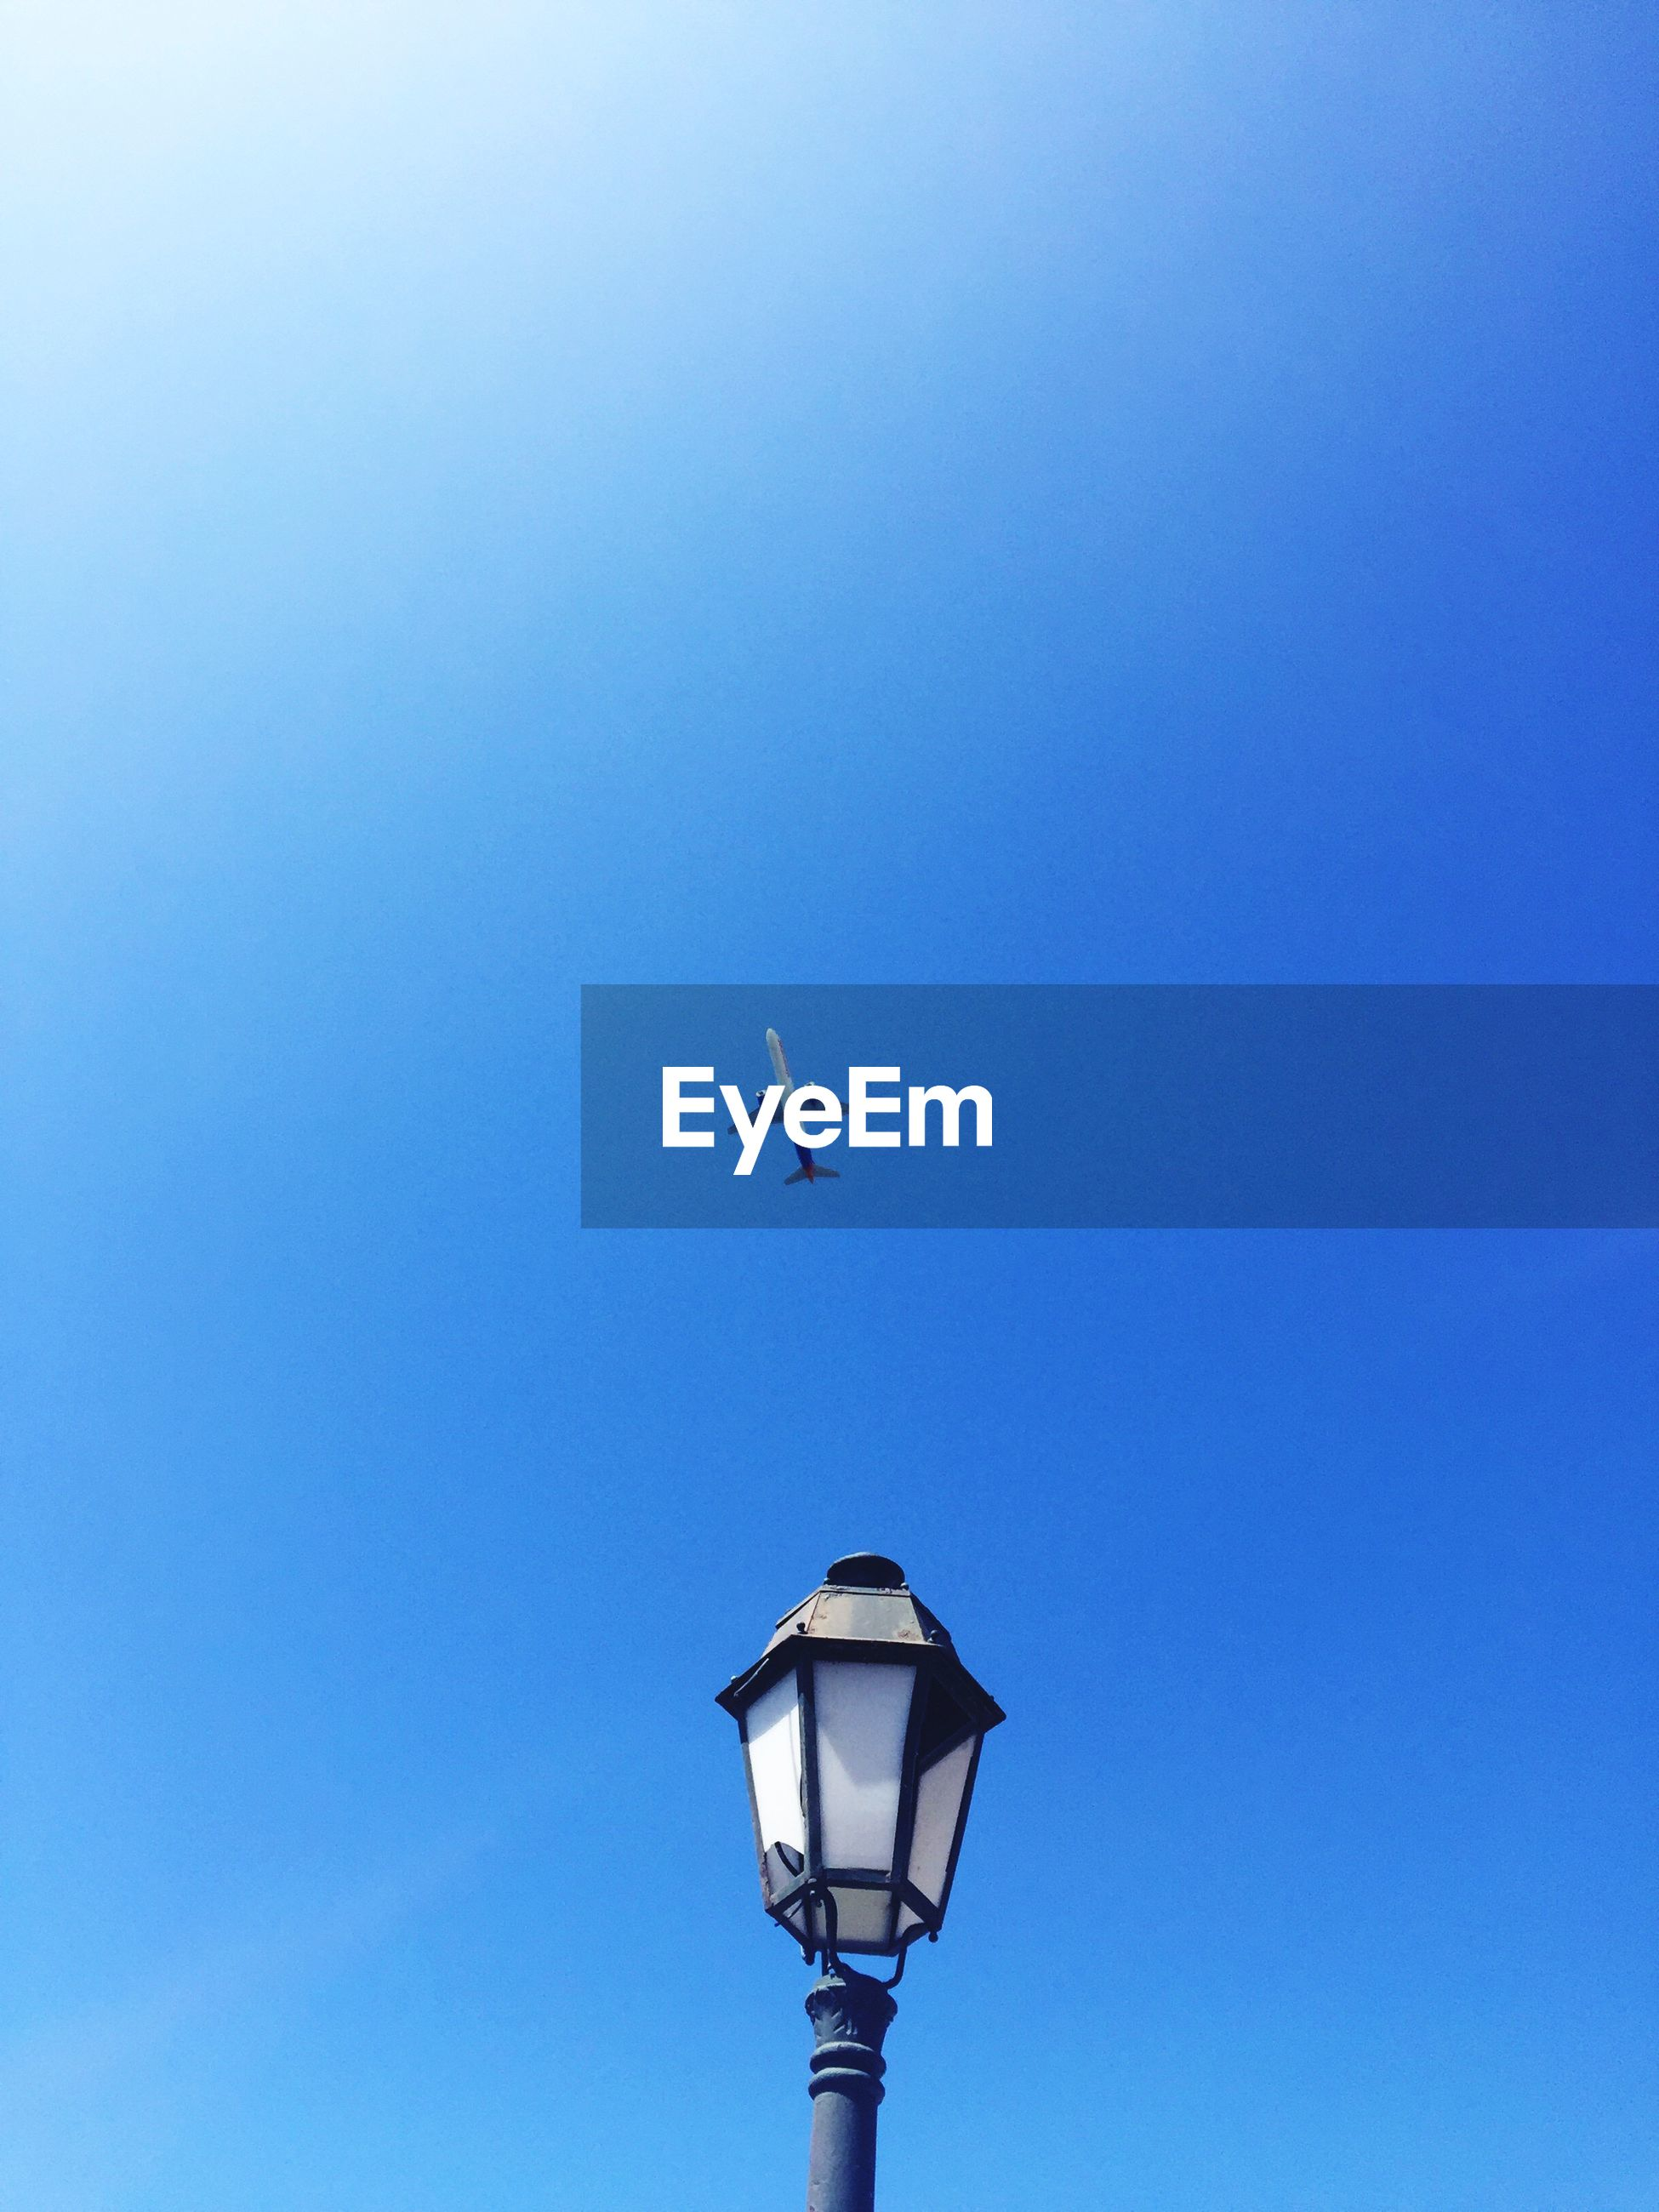 Low angle view of airplane flying over lamp post against clear blue sky